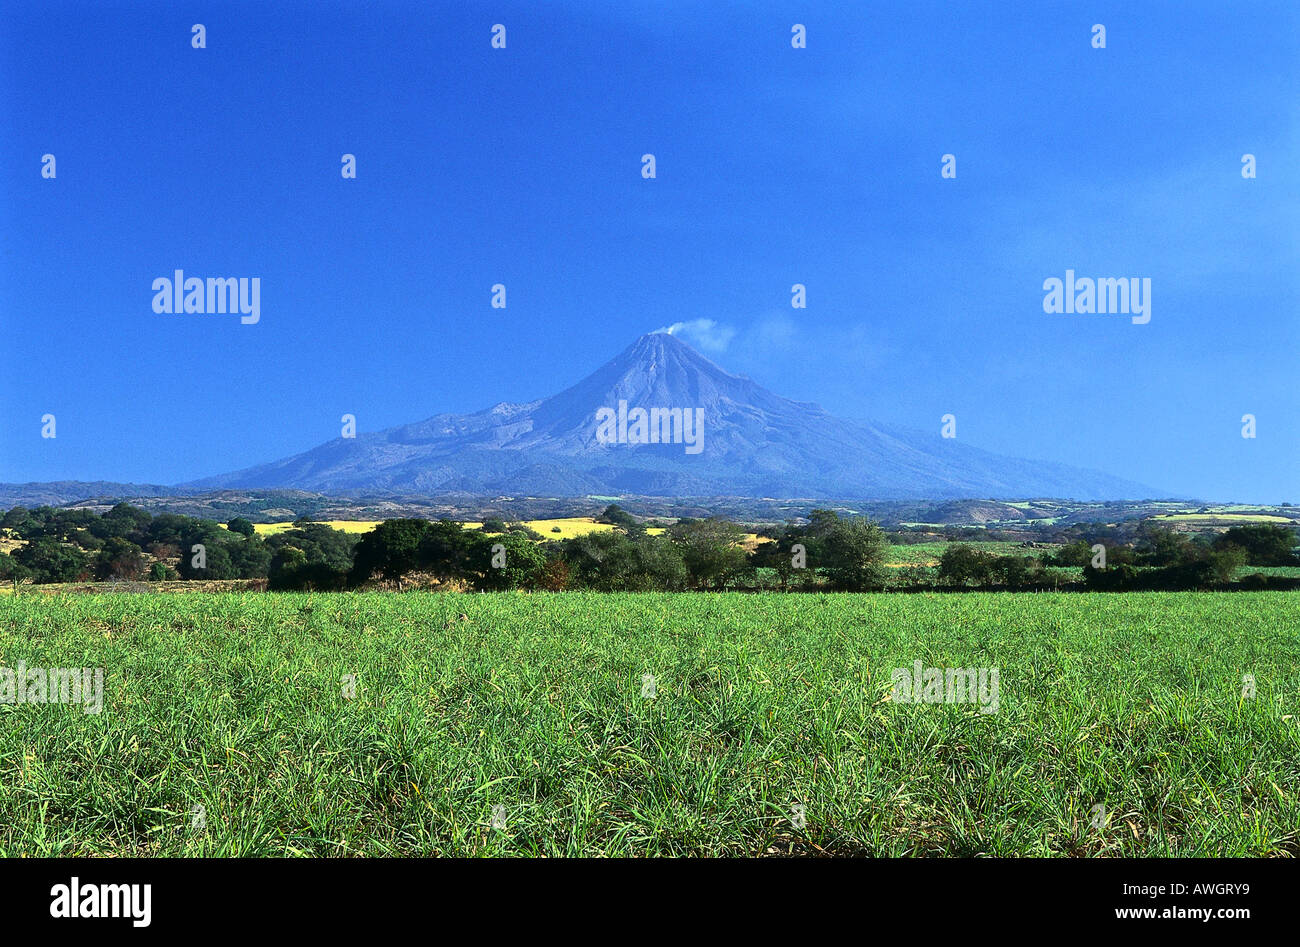 Volcan de Fuego, seen from the road heading out of Colima toward Guadalajara, Mexico. - Stock Image